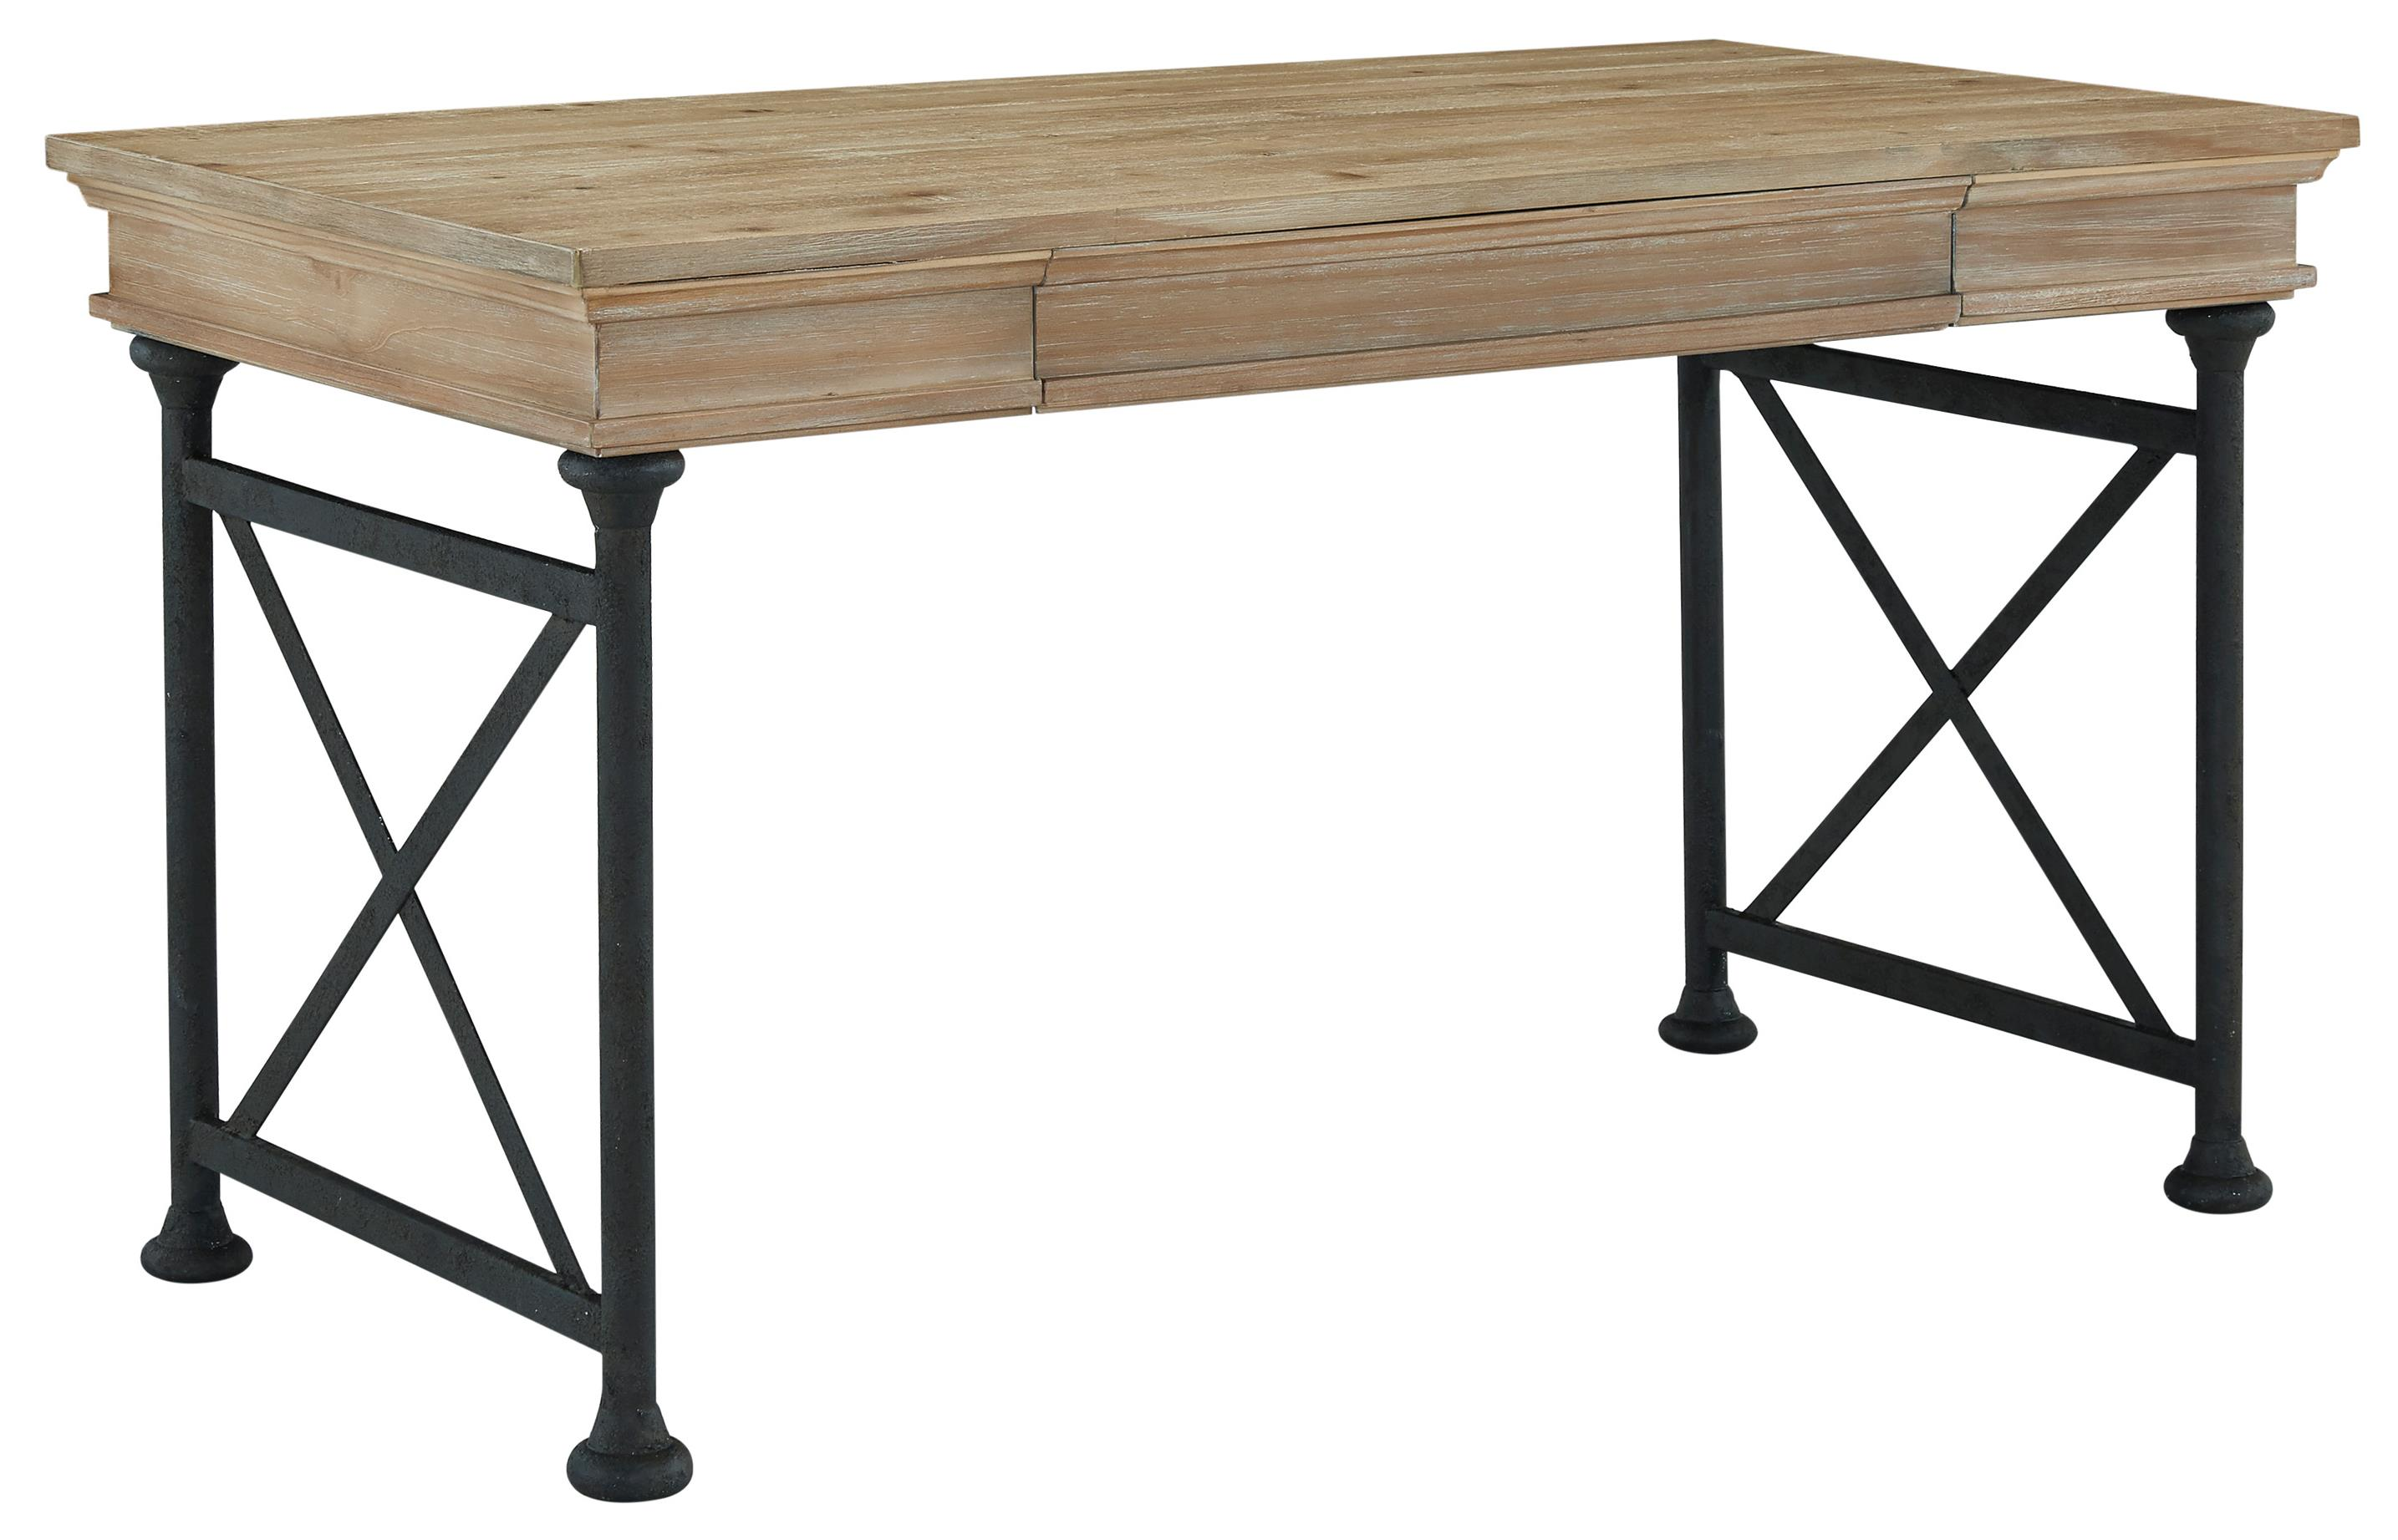 Signature Design by Ashley Shennifin Home Office Large Leg Desk - Item Number: H862-44